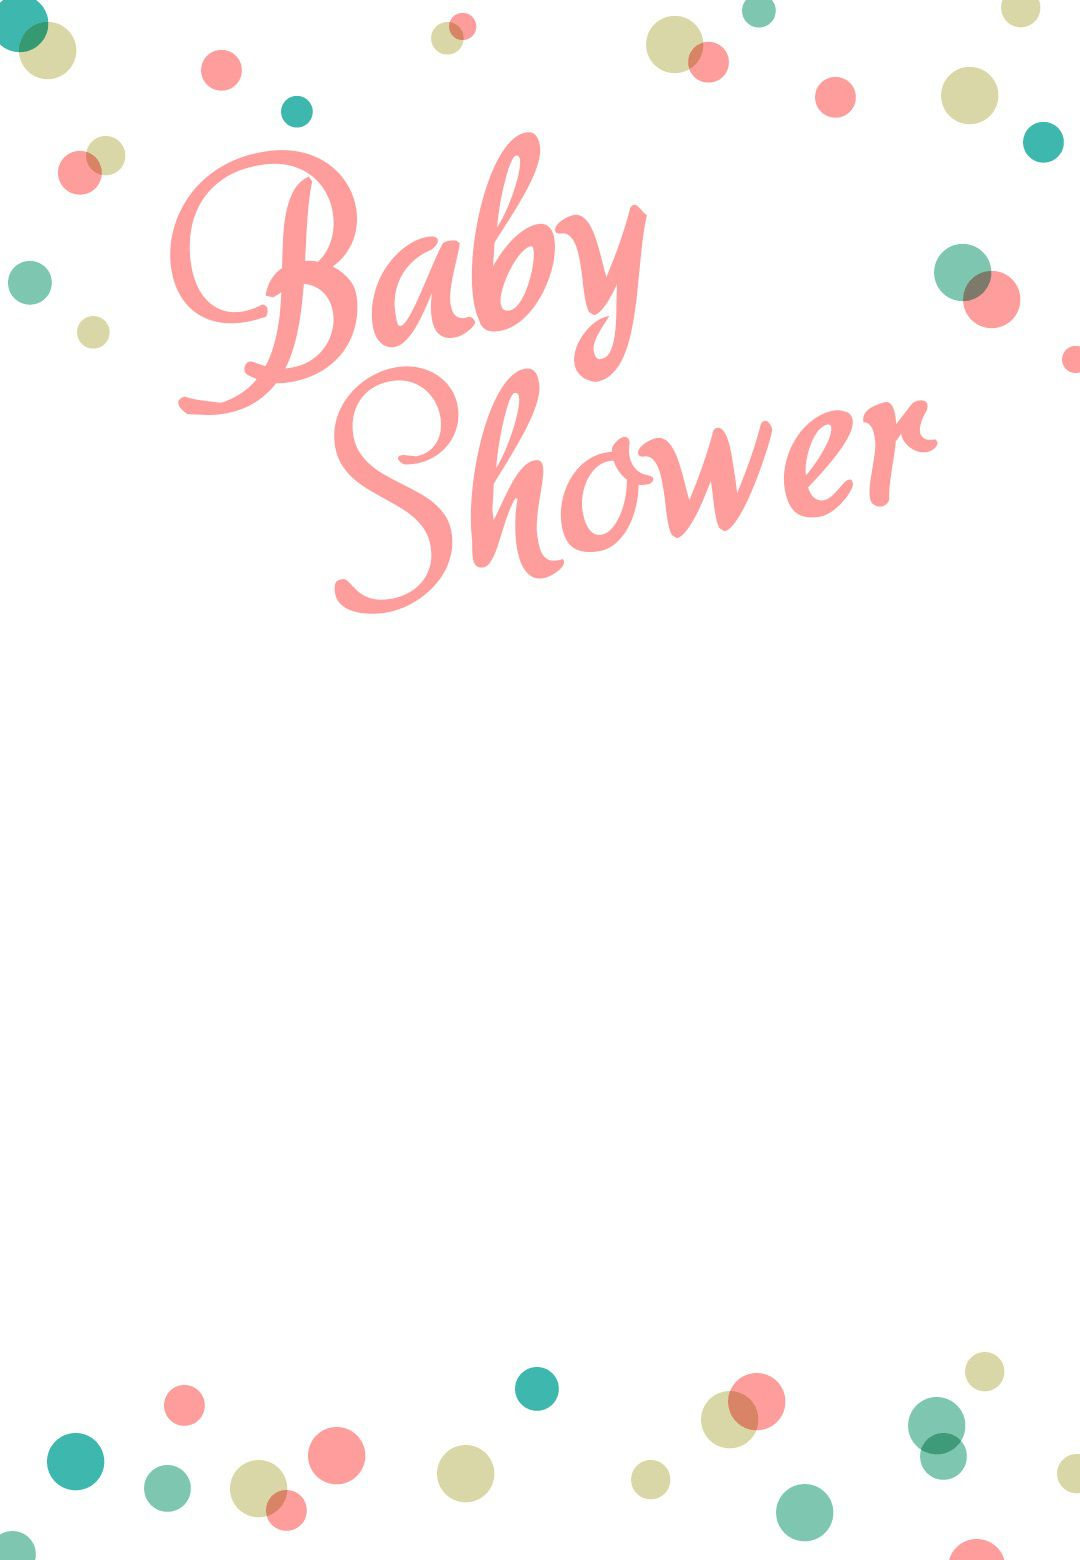 006 Unique Baby Shower Template Free Printable Highest Quality  Superhero Invitation For A Boy DiaperFull